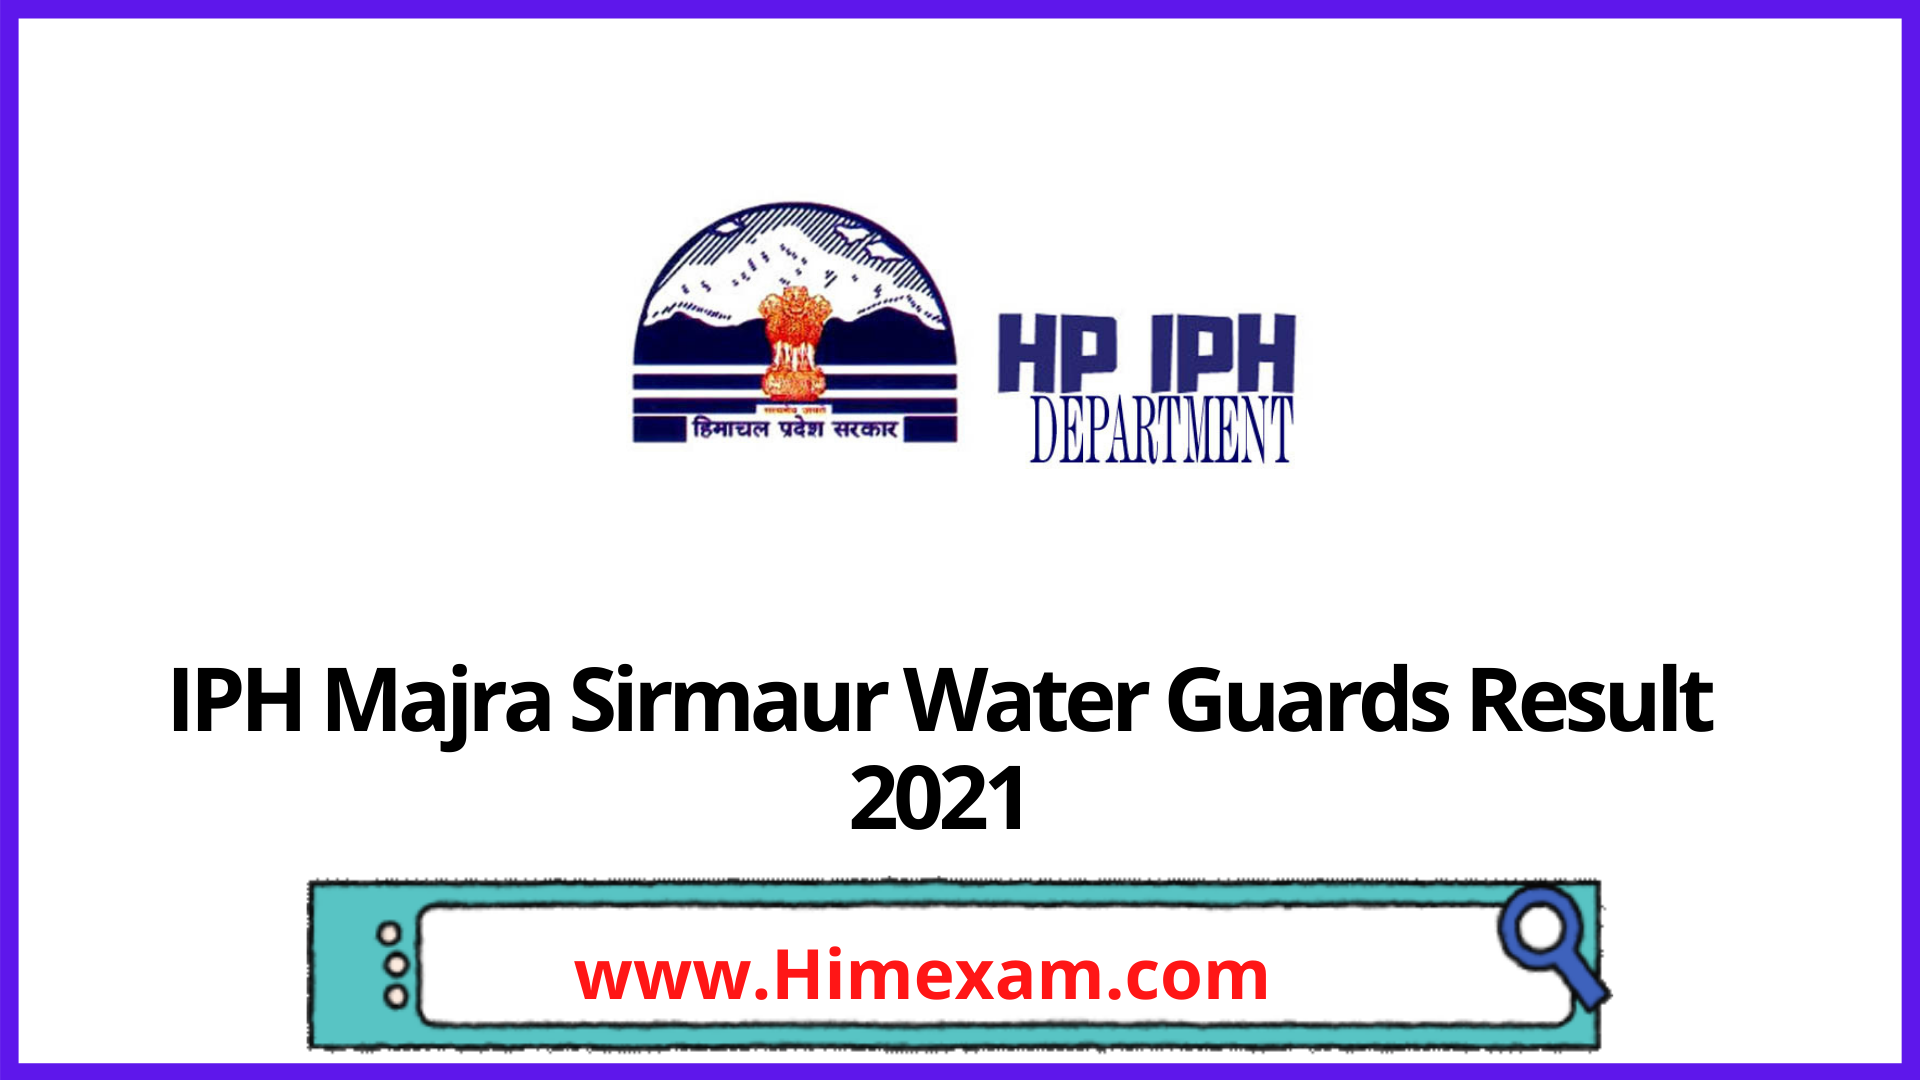 IPH Majra Sirmaur Water Guards Result 2021